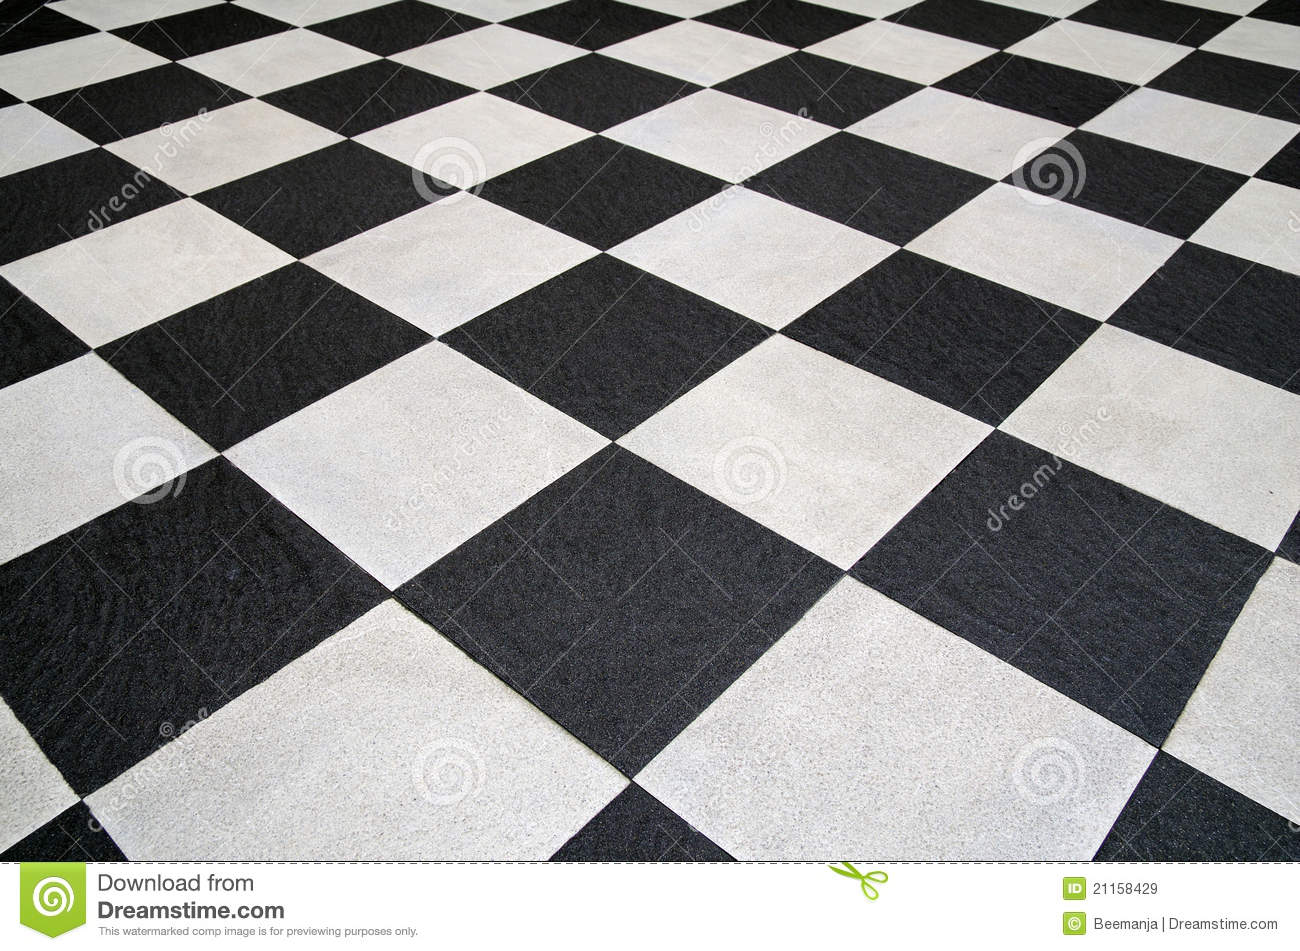 Square Black And White Tiles Floor Royalty Free Stock Images Image 21158429